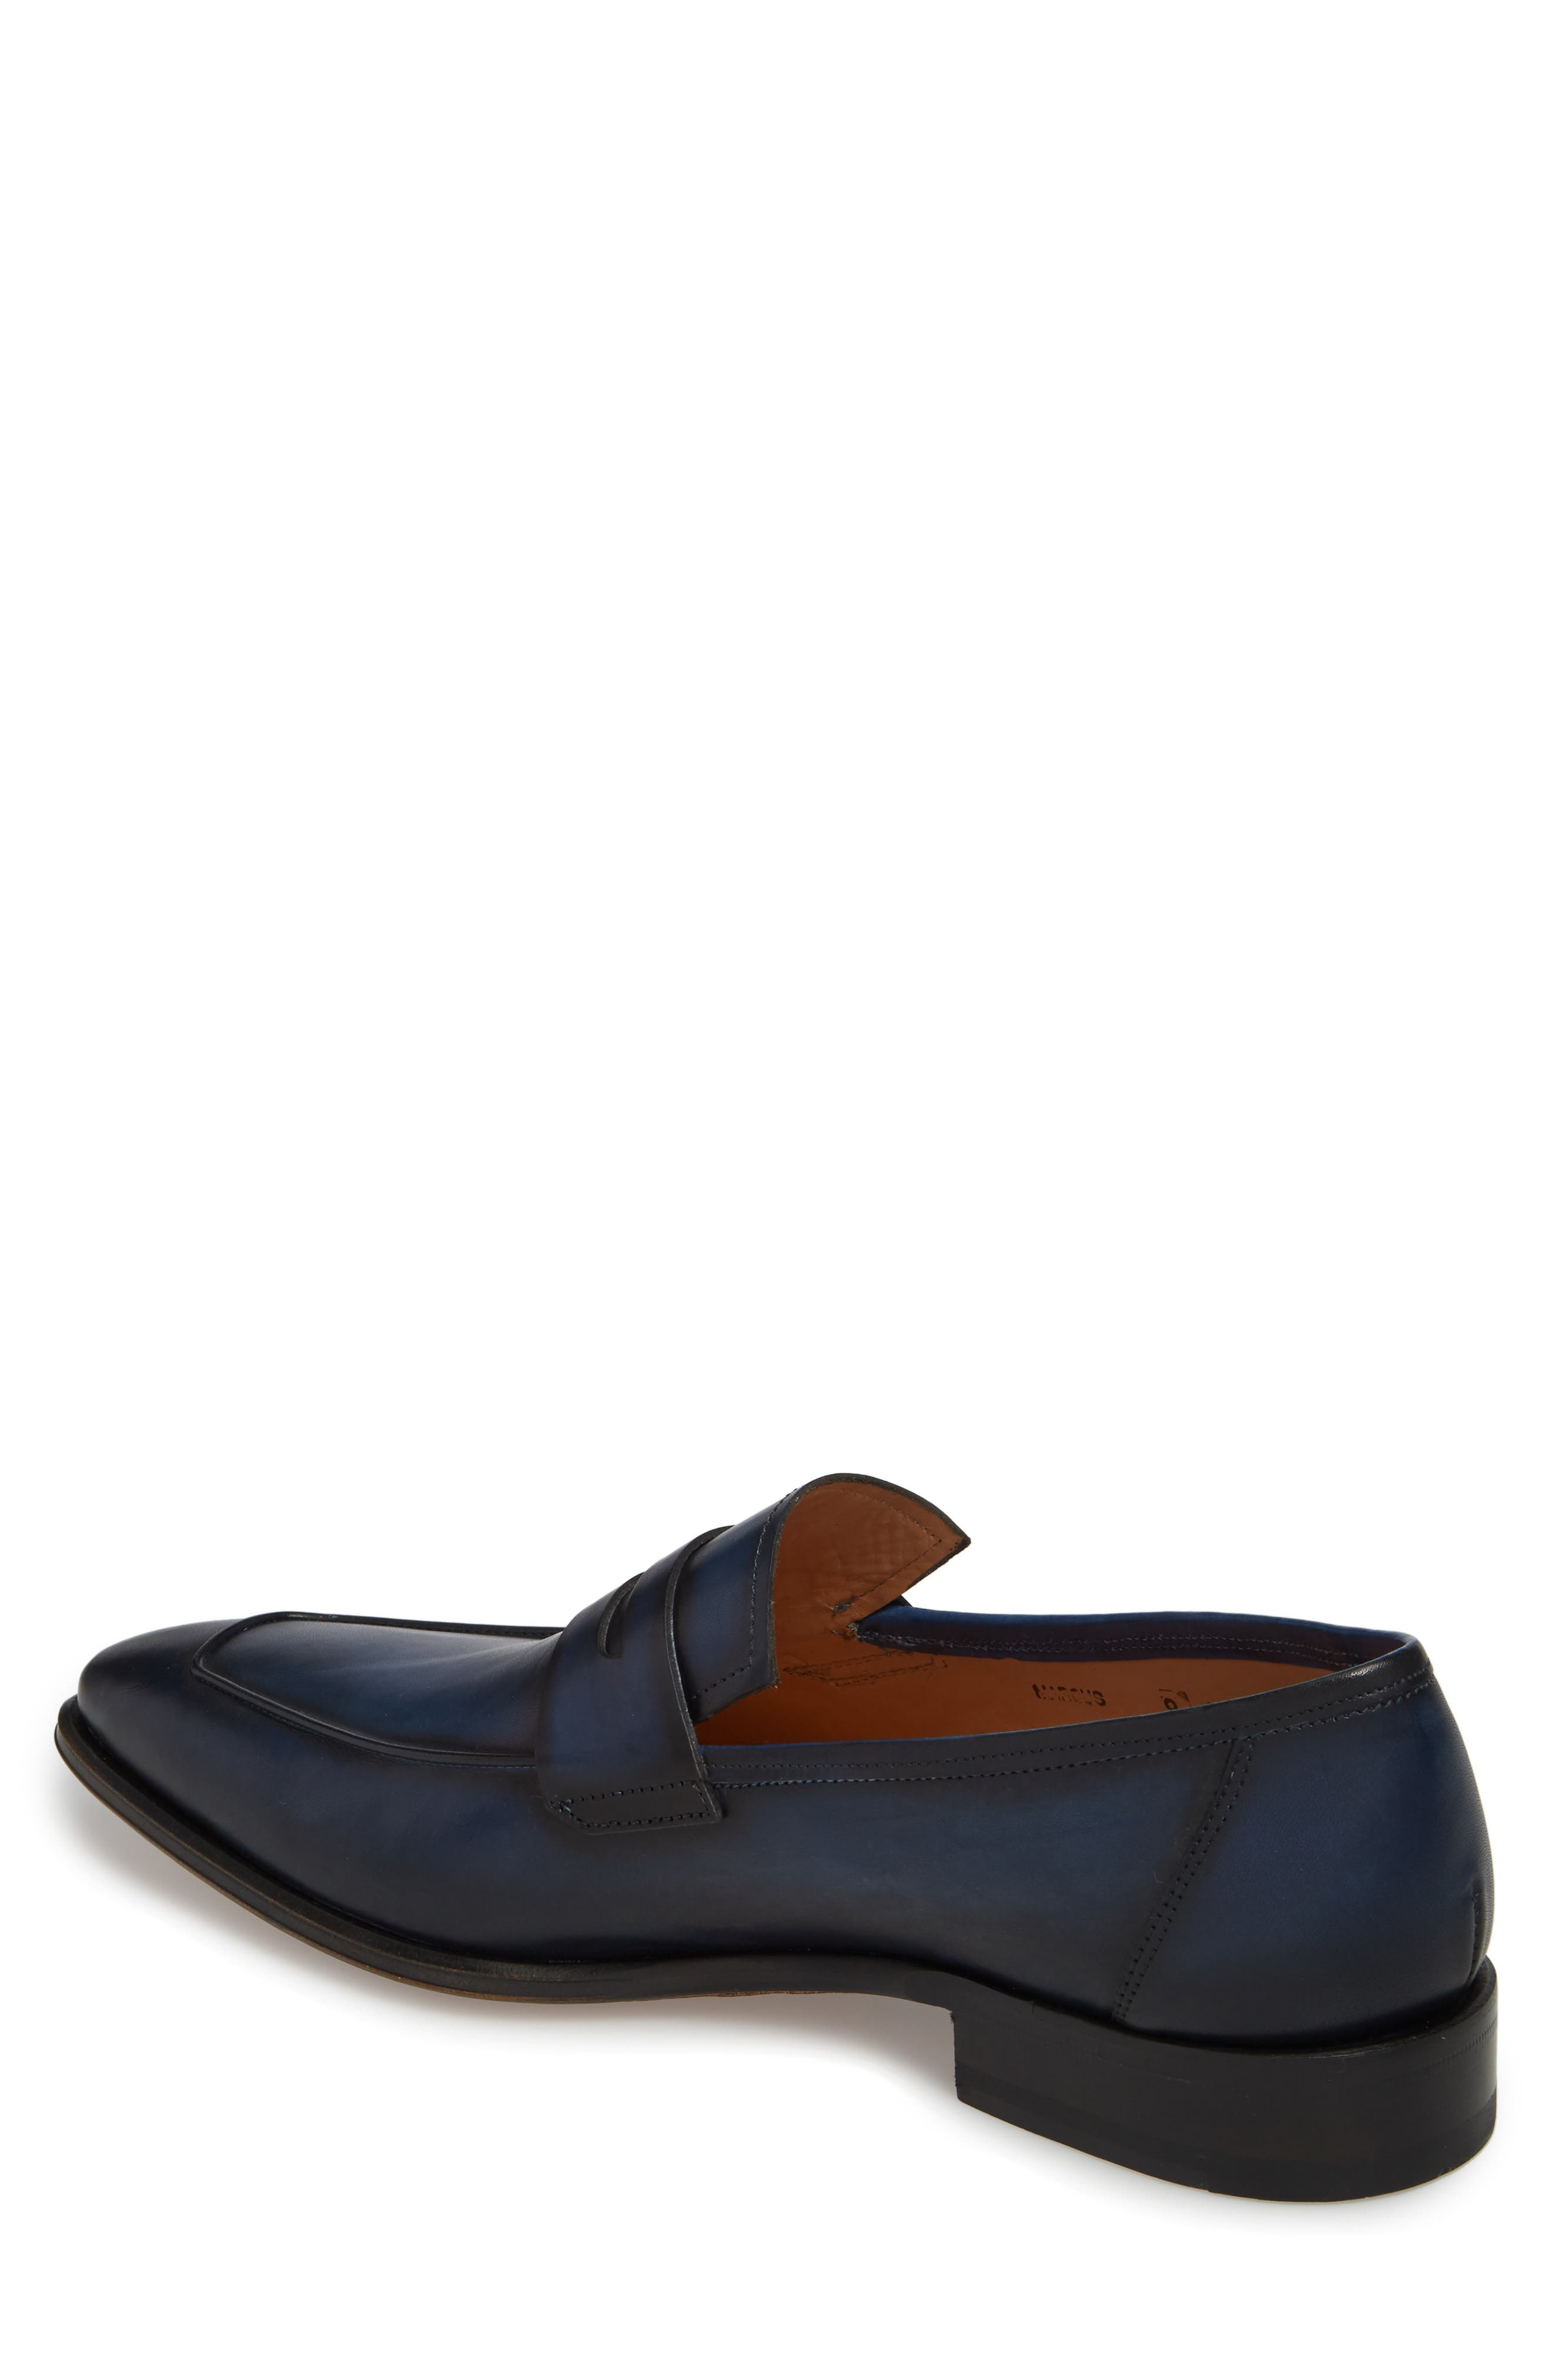 Marcus Penny Loafer,                             Alternate thumbnail 2, color,                             Mid Blue Leather